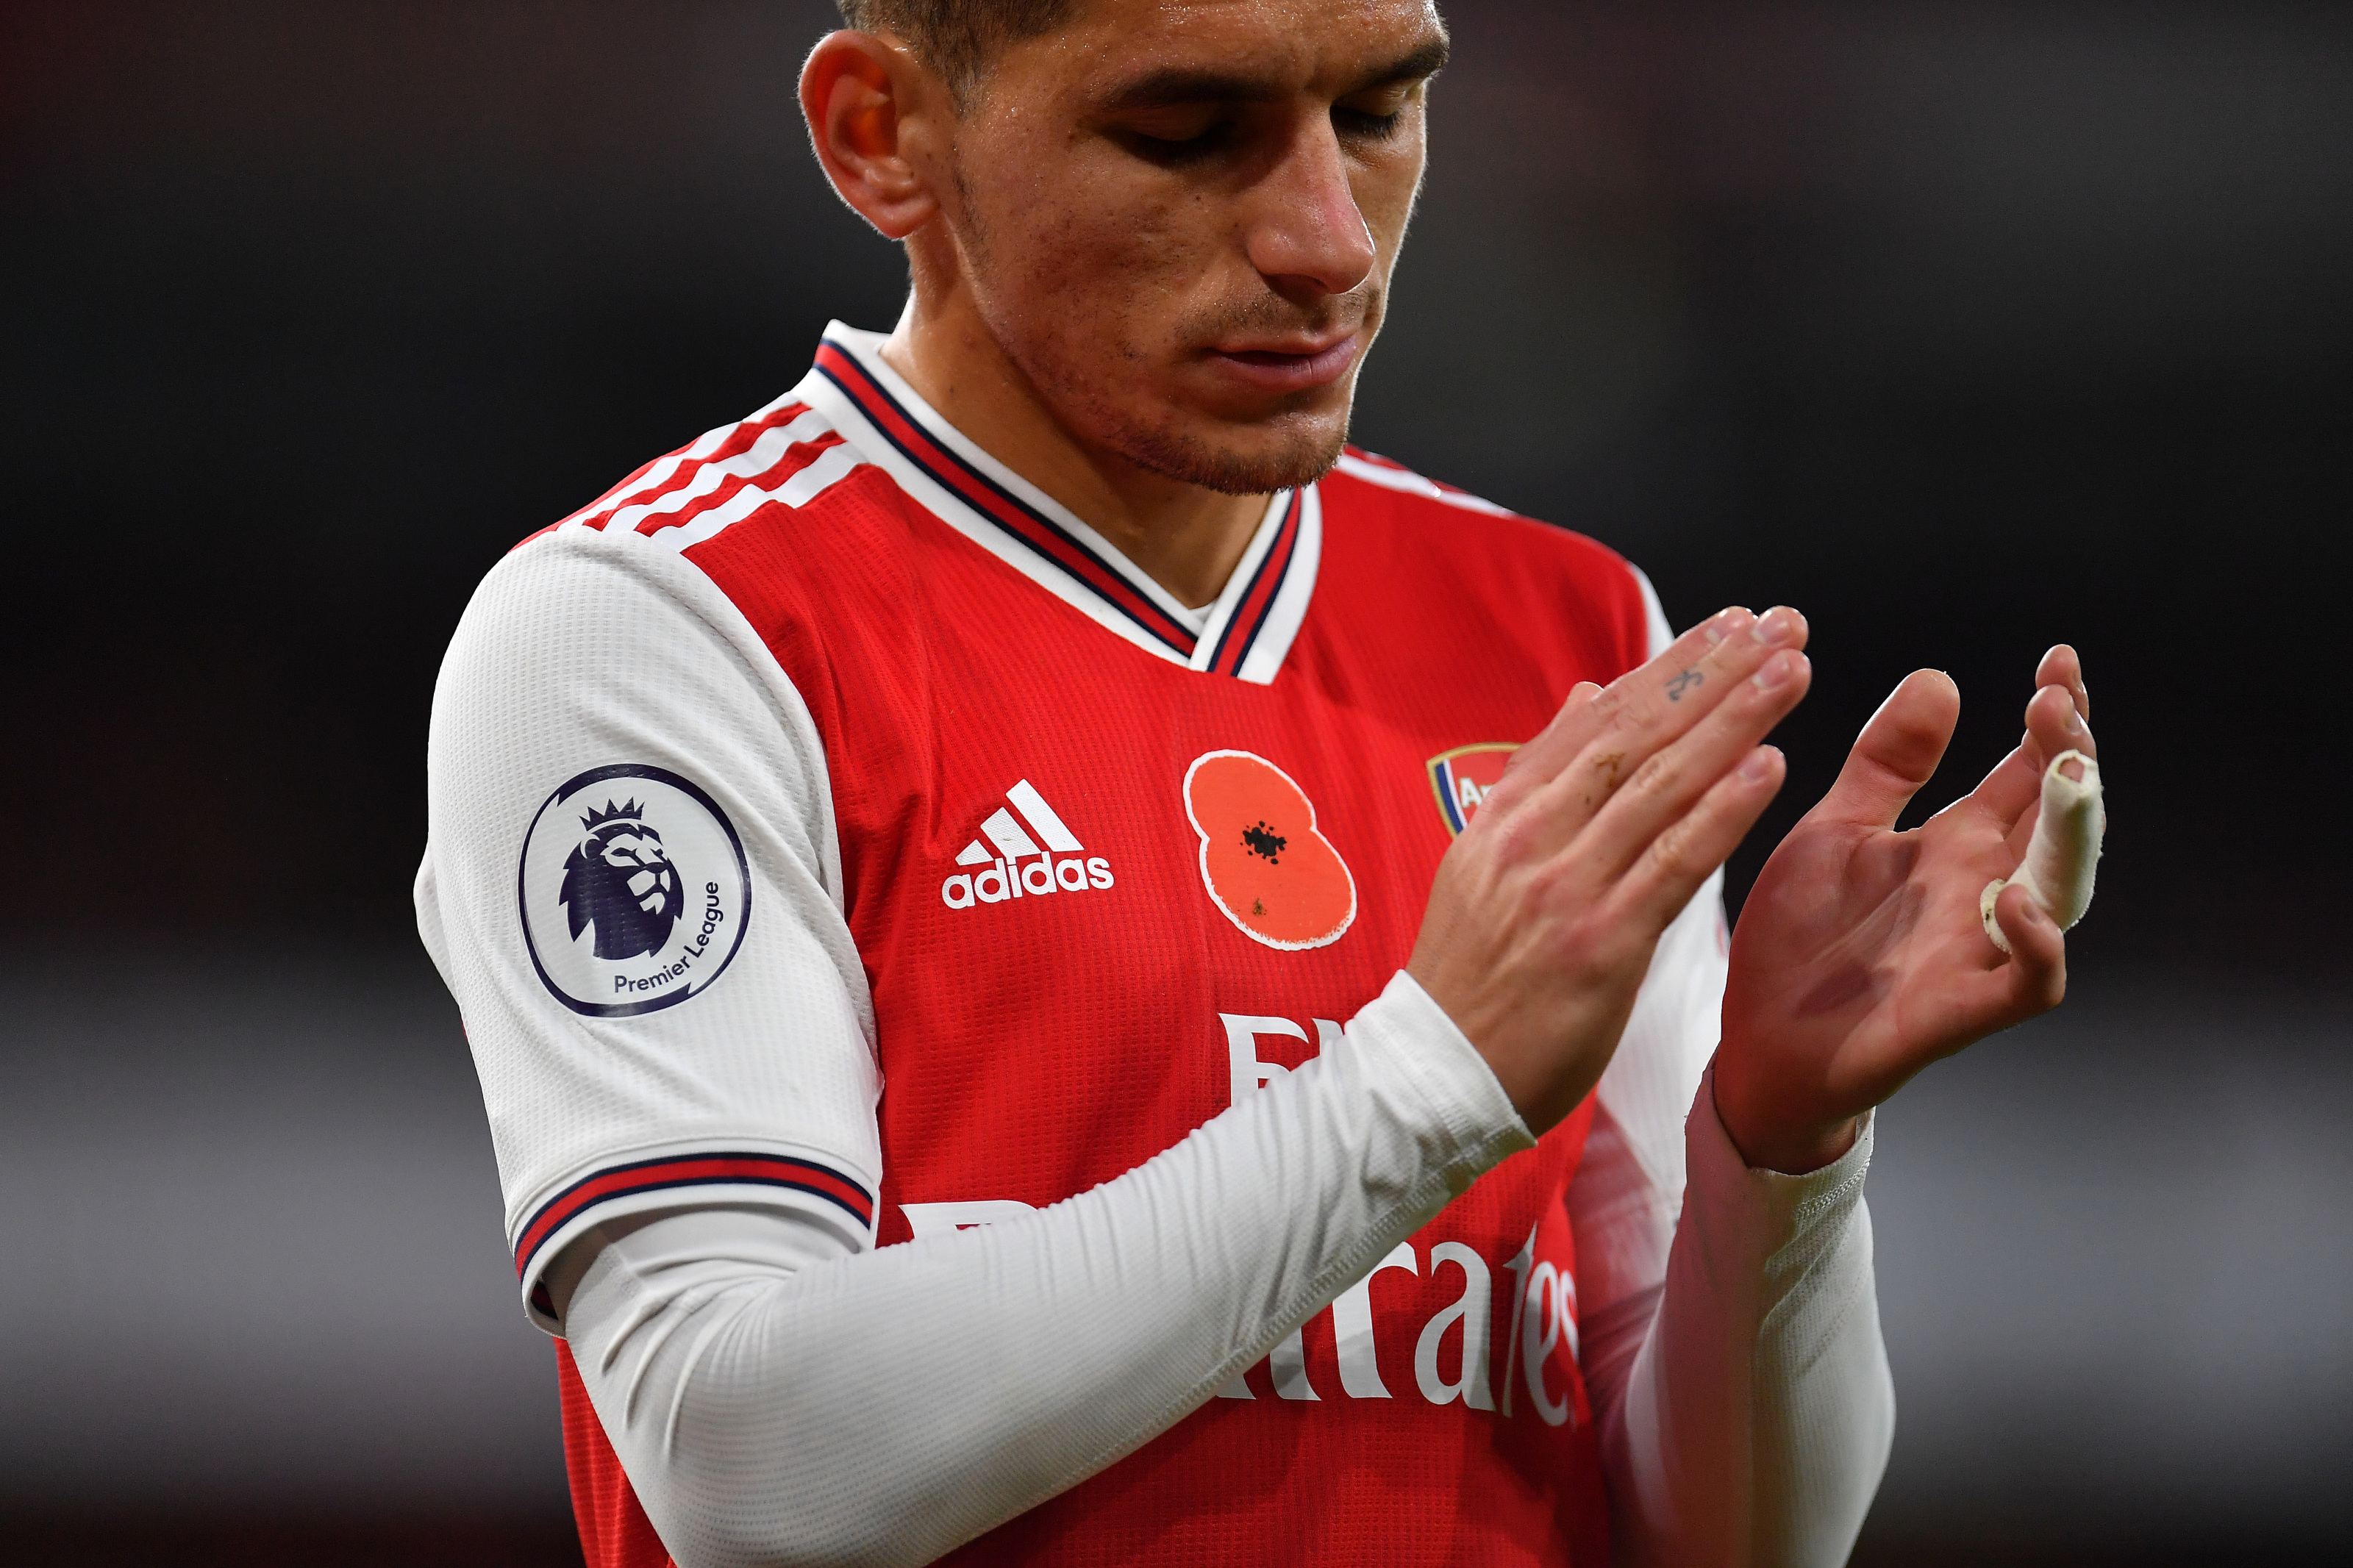 Arsenal: The hard truth facing Lucas Torreira and his future